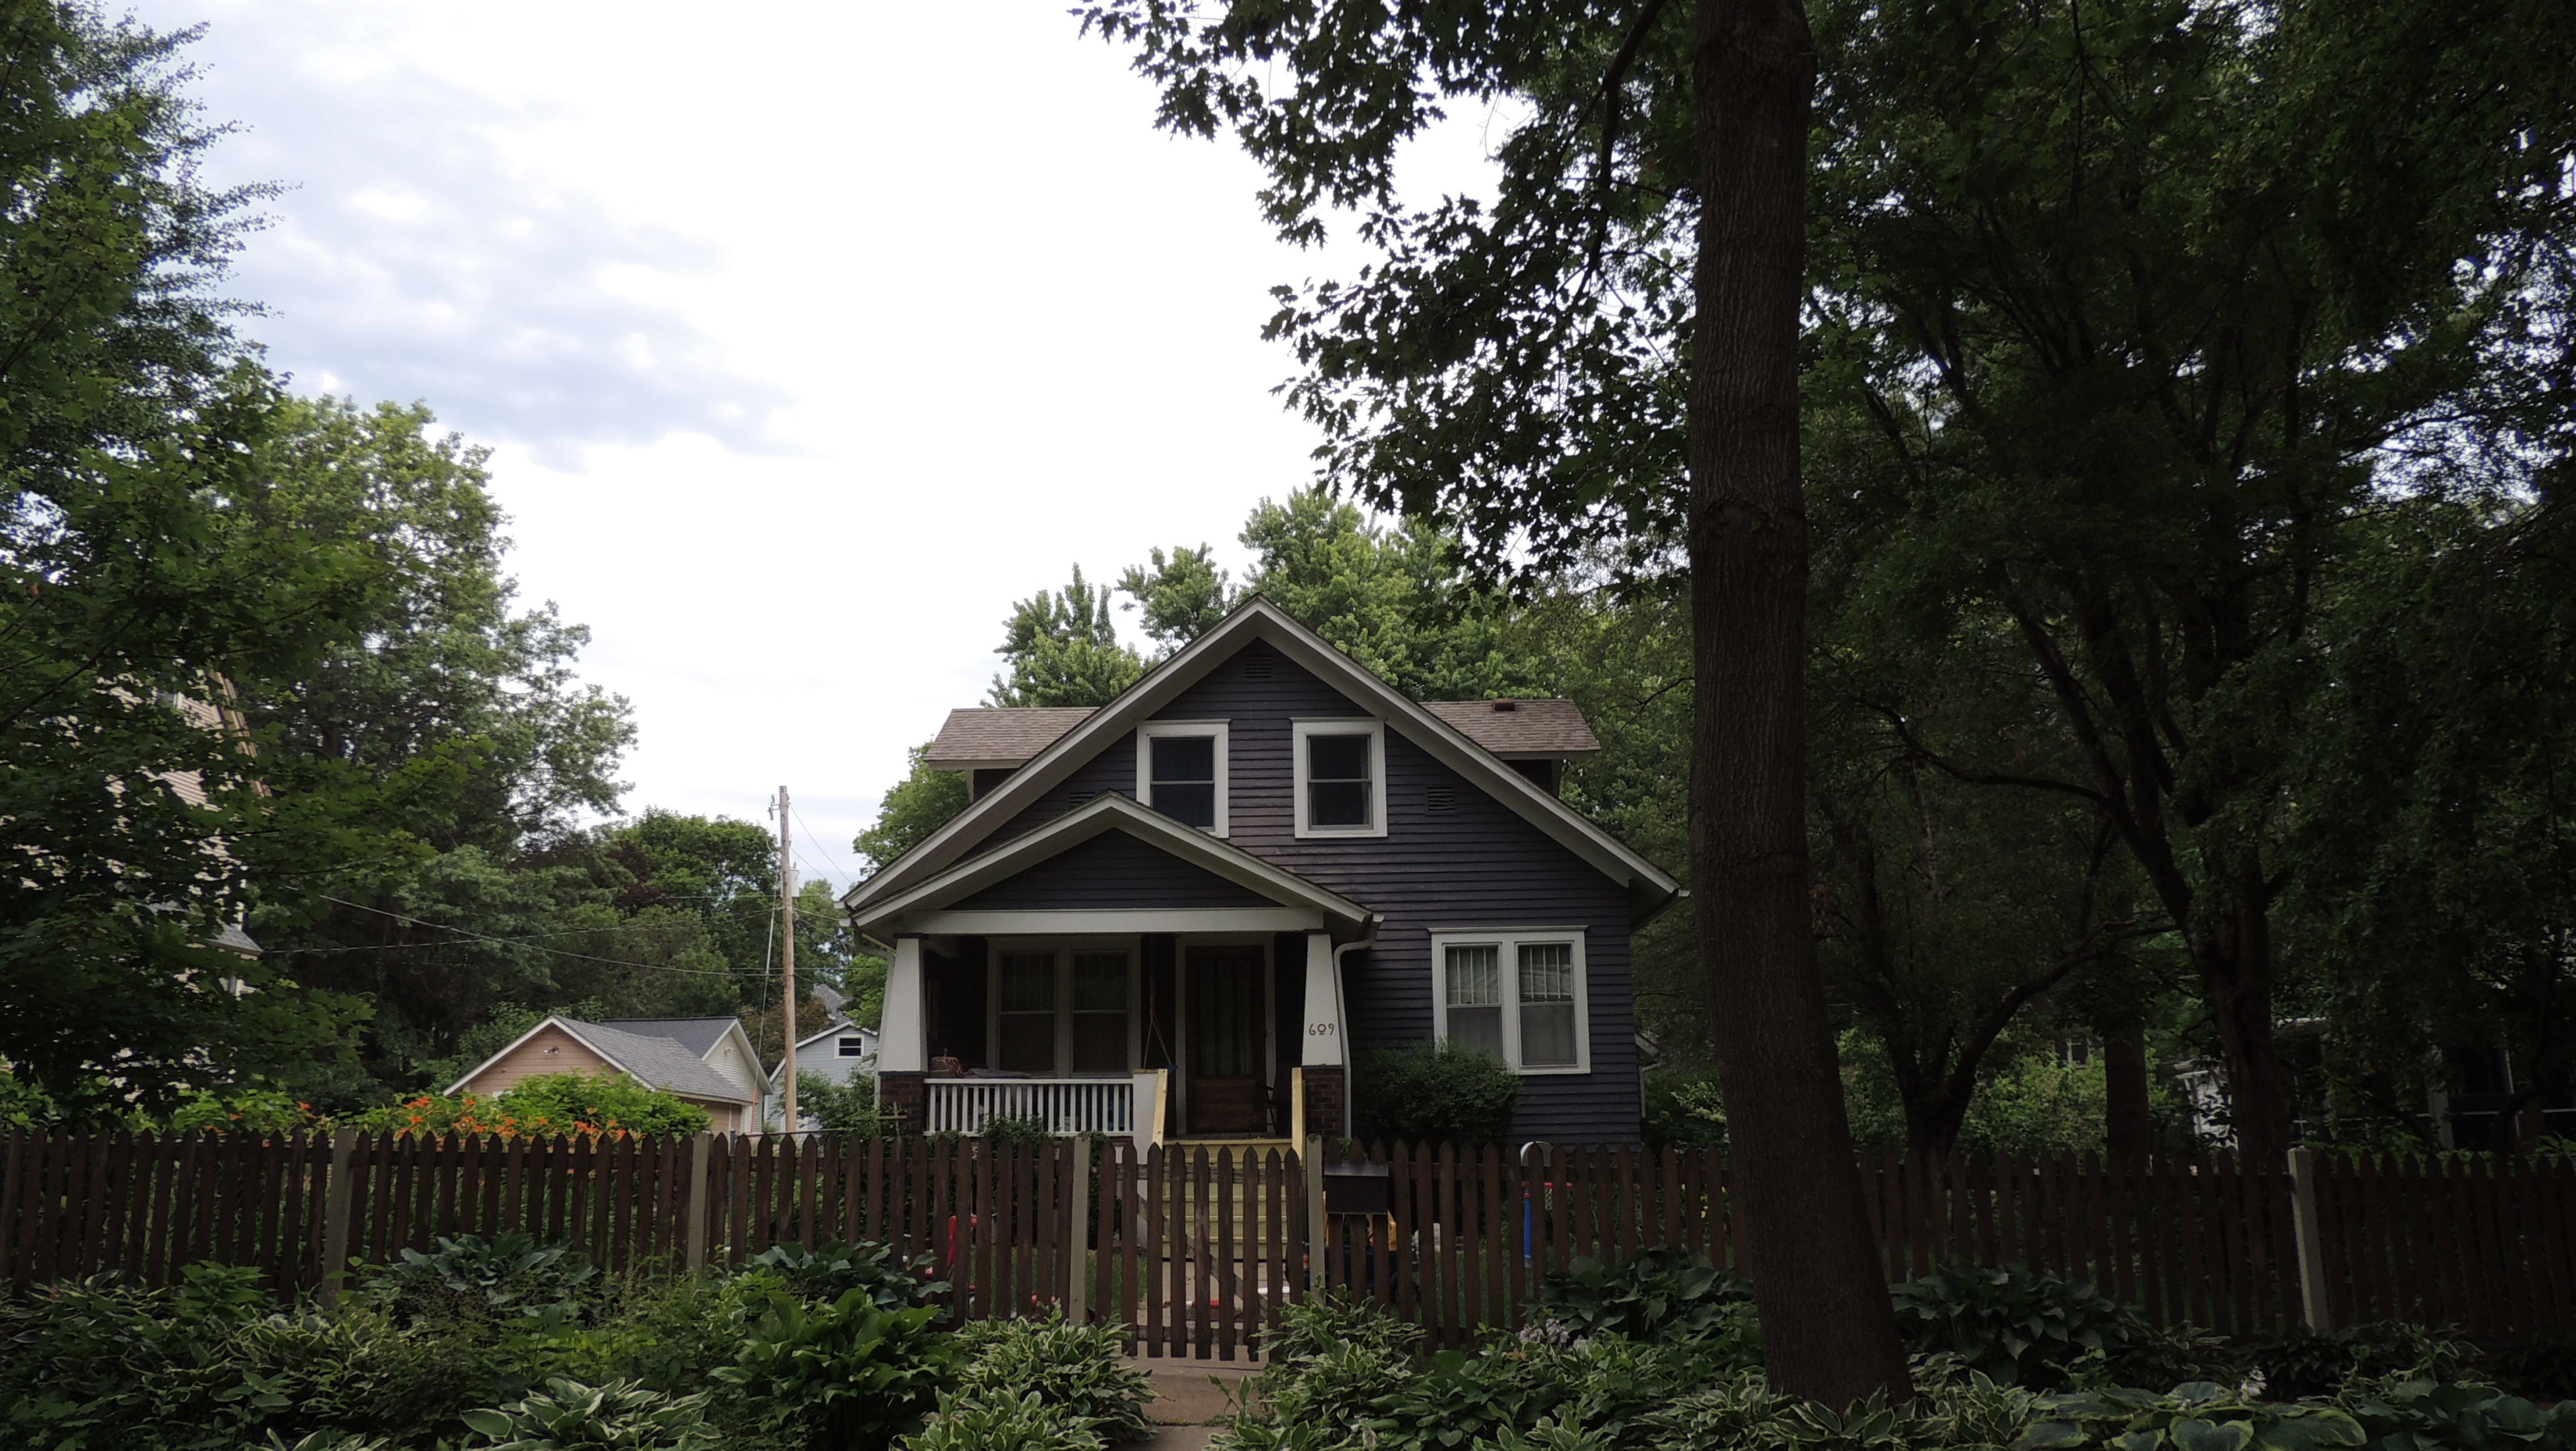 Photo of house at 609 6th Street NW